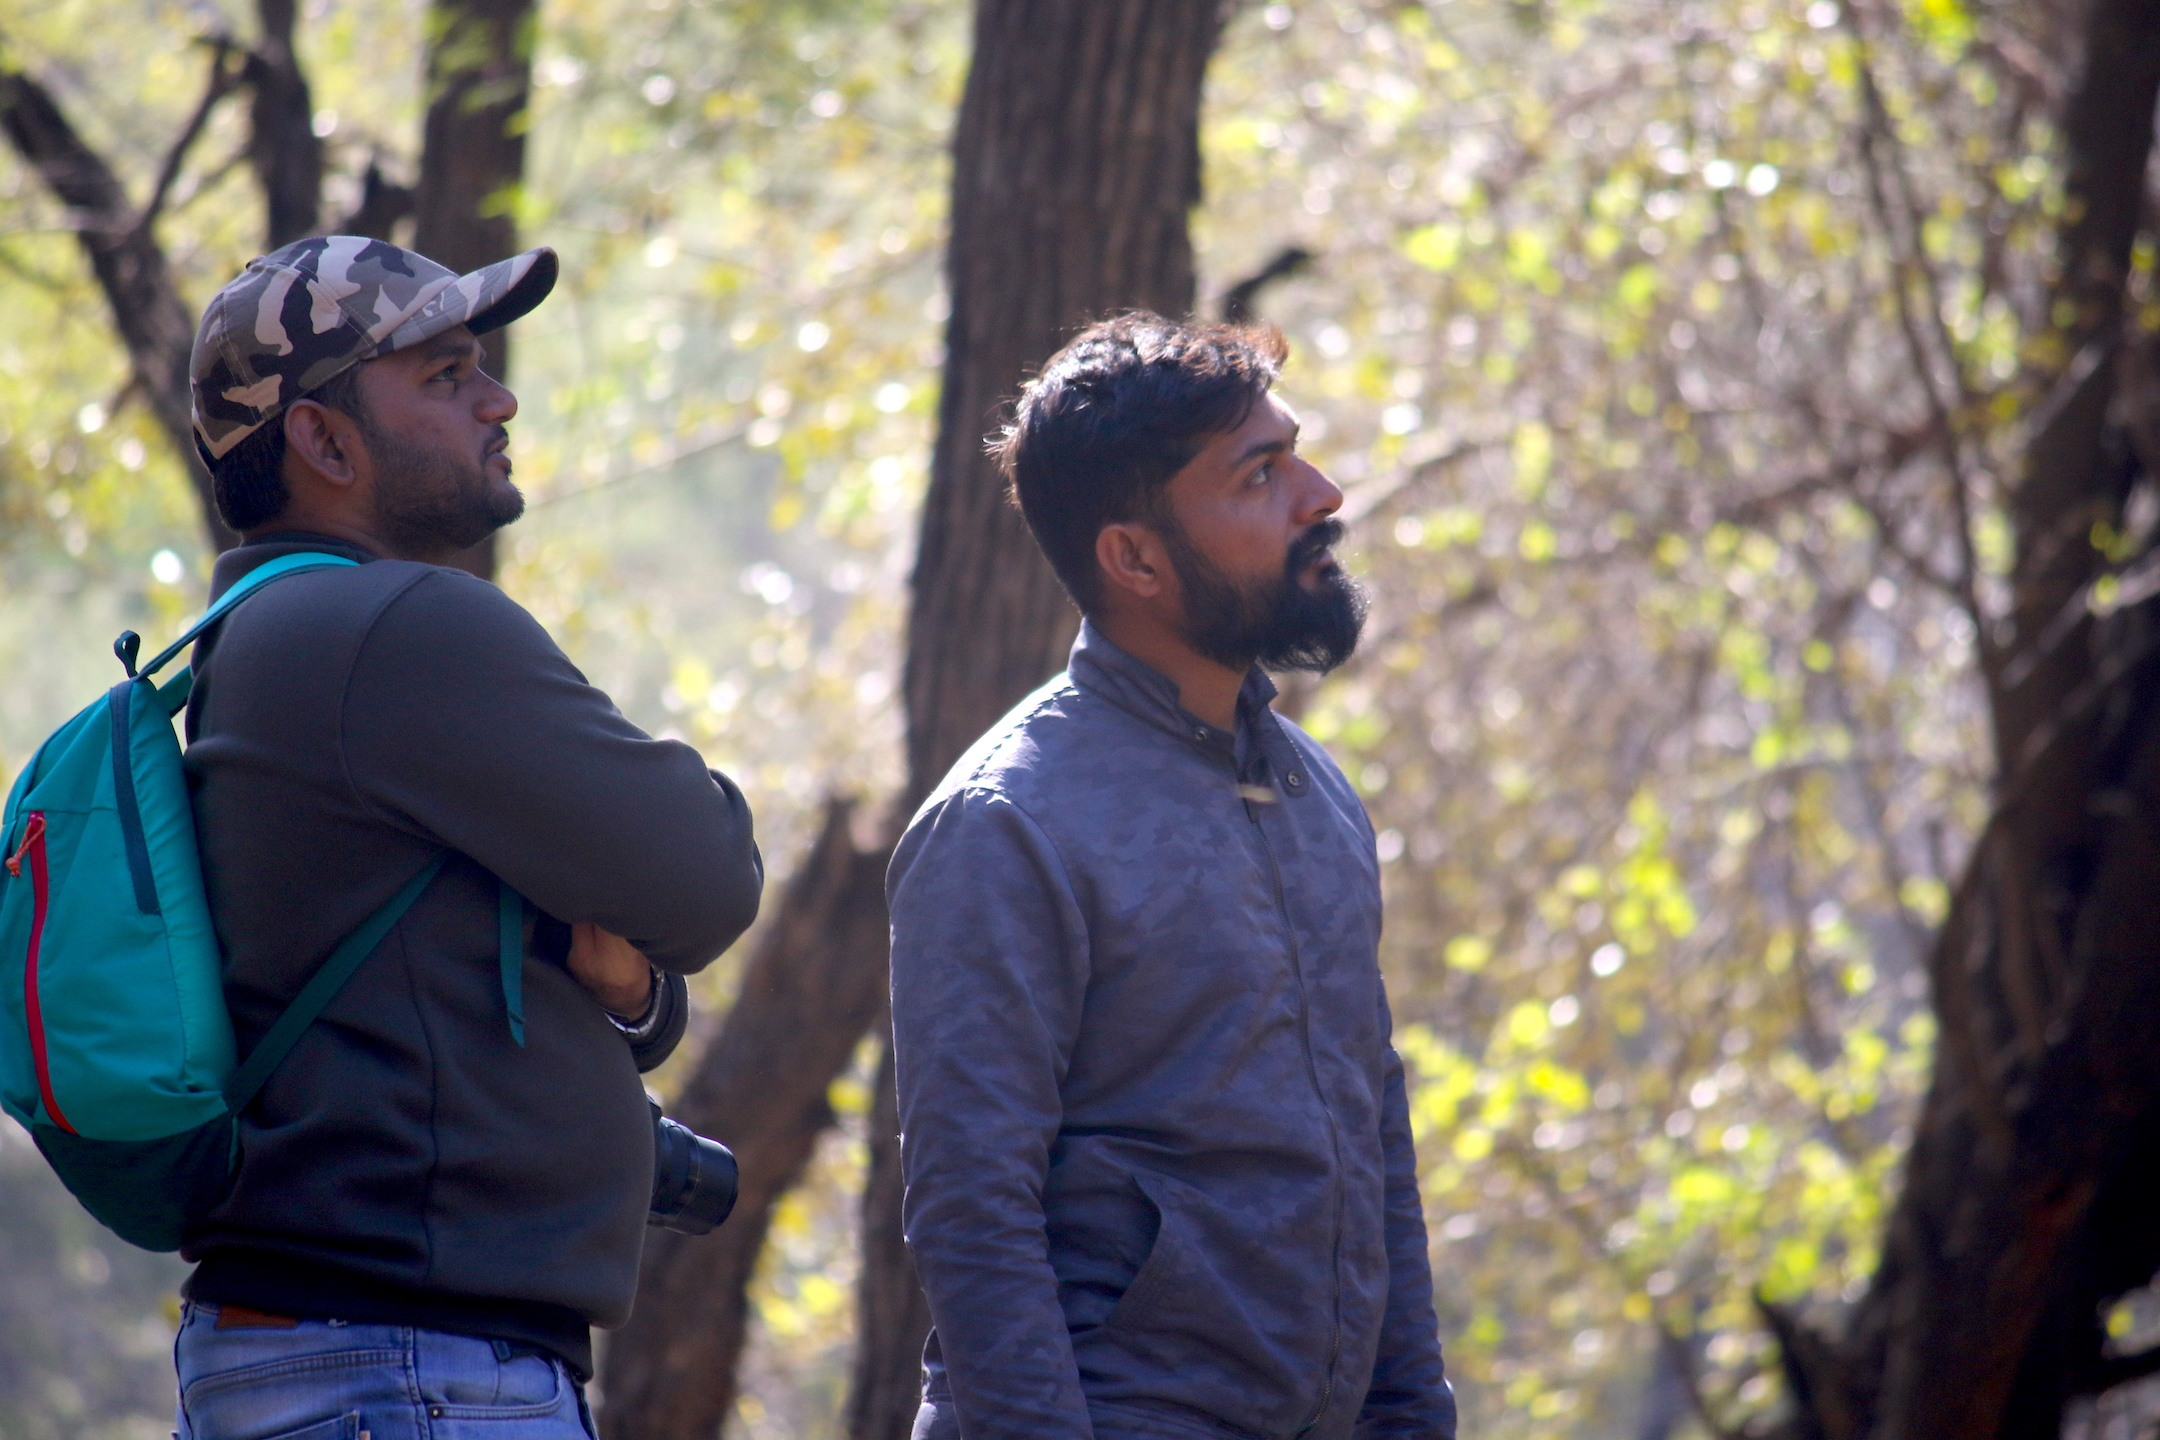 A keen student of nature, Abhinav is always willing to share his knowledge about the sanctuary's flora and fauna. Photo: Mayank Bohra